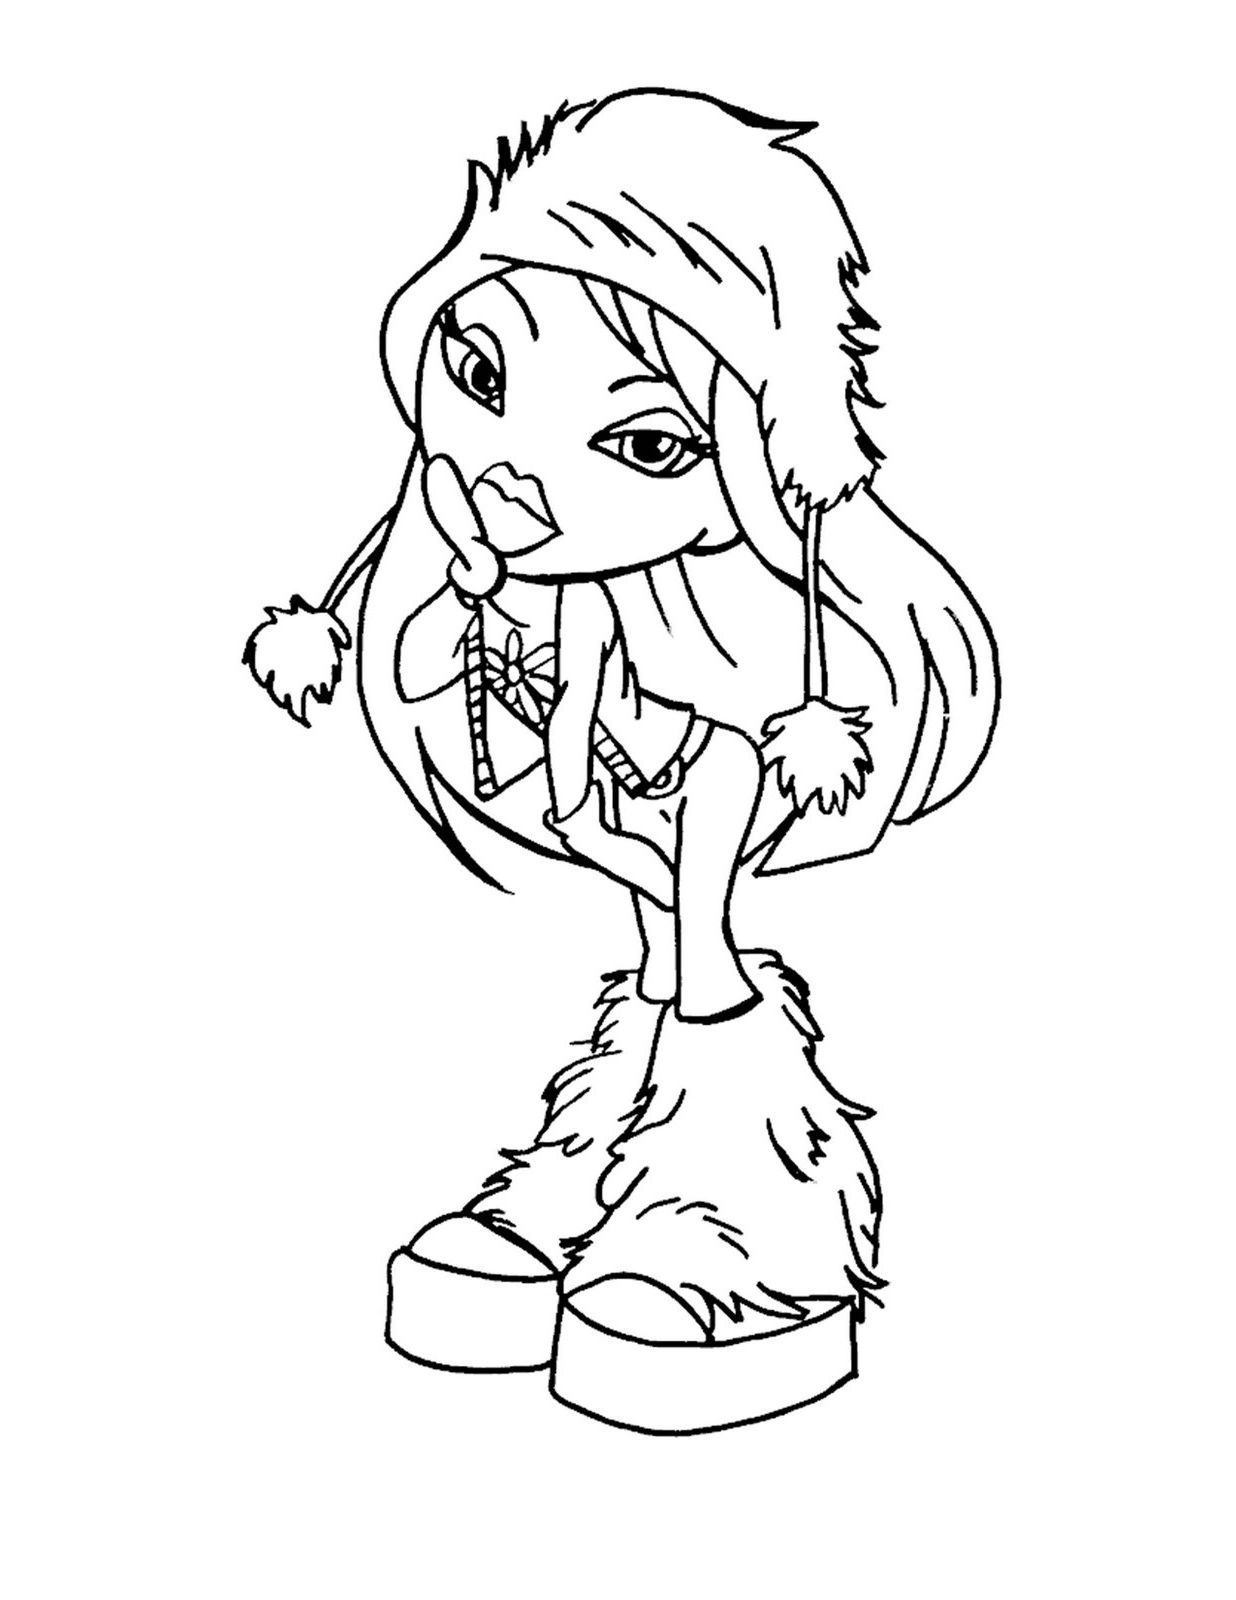 Coloring Pages Bratz Doll Coloring Pages 1000 images about bratz digis on pinterest coloring free printable pages and books